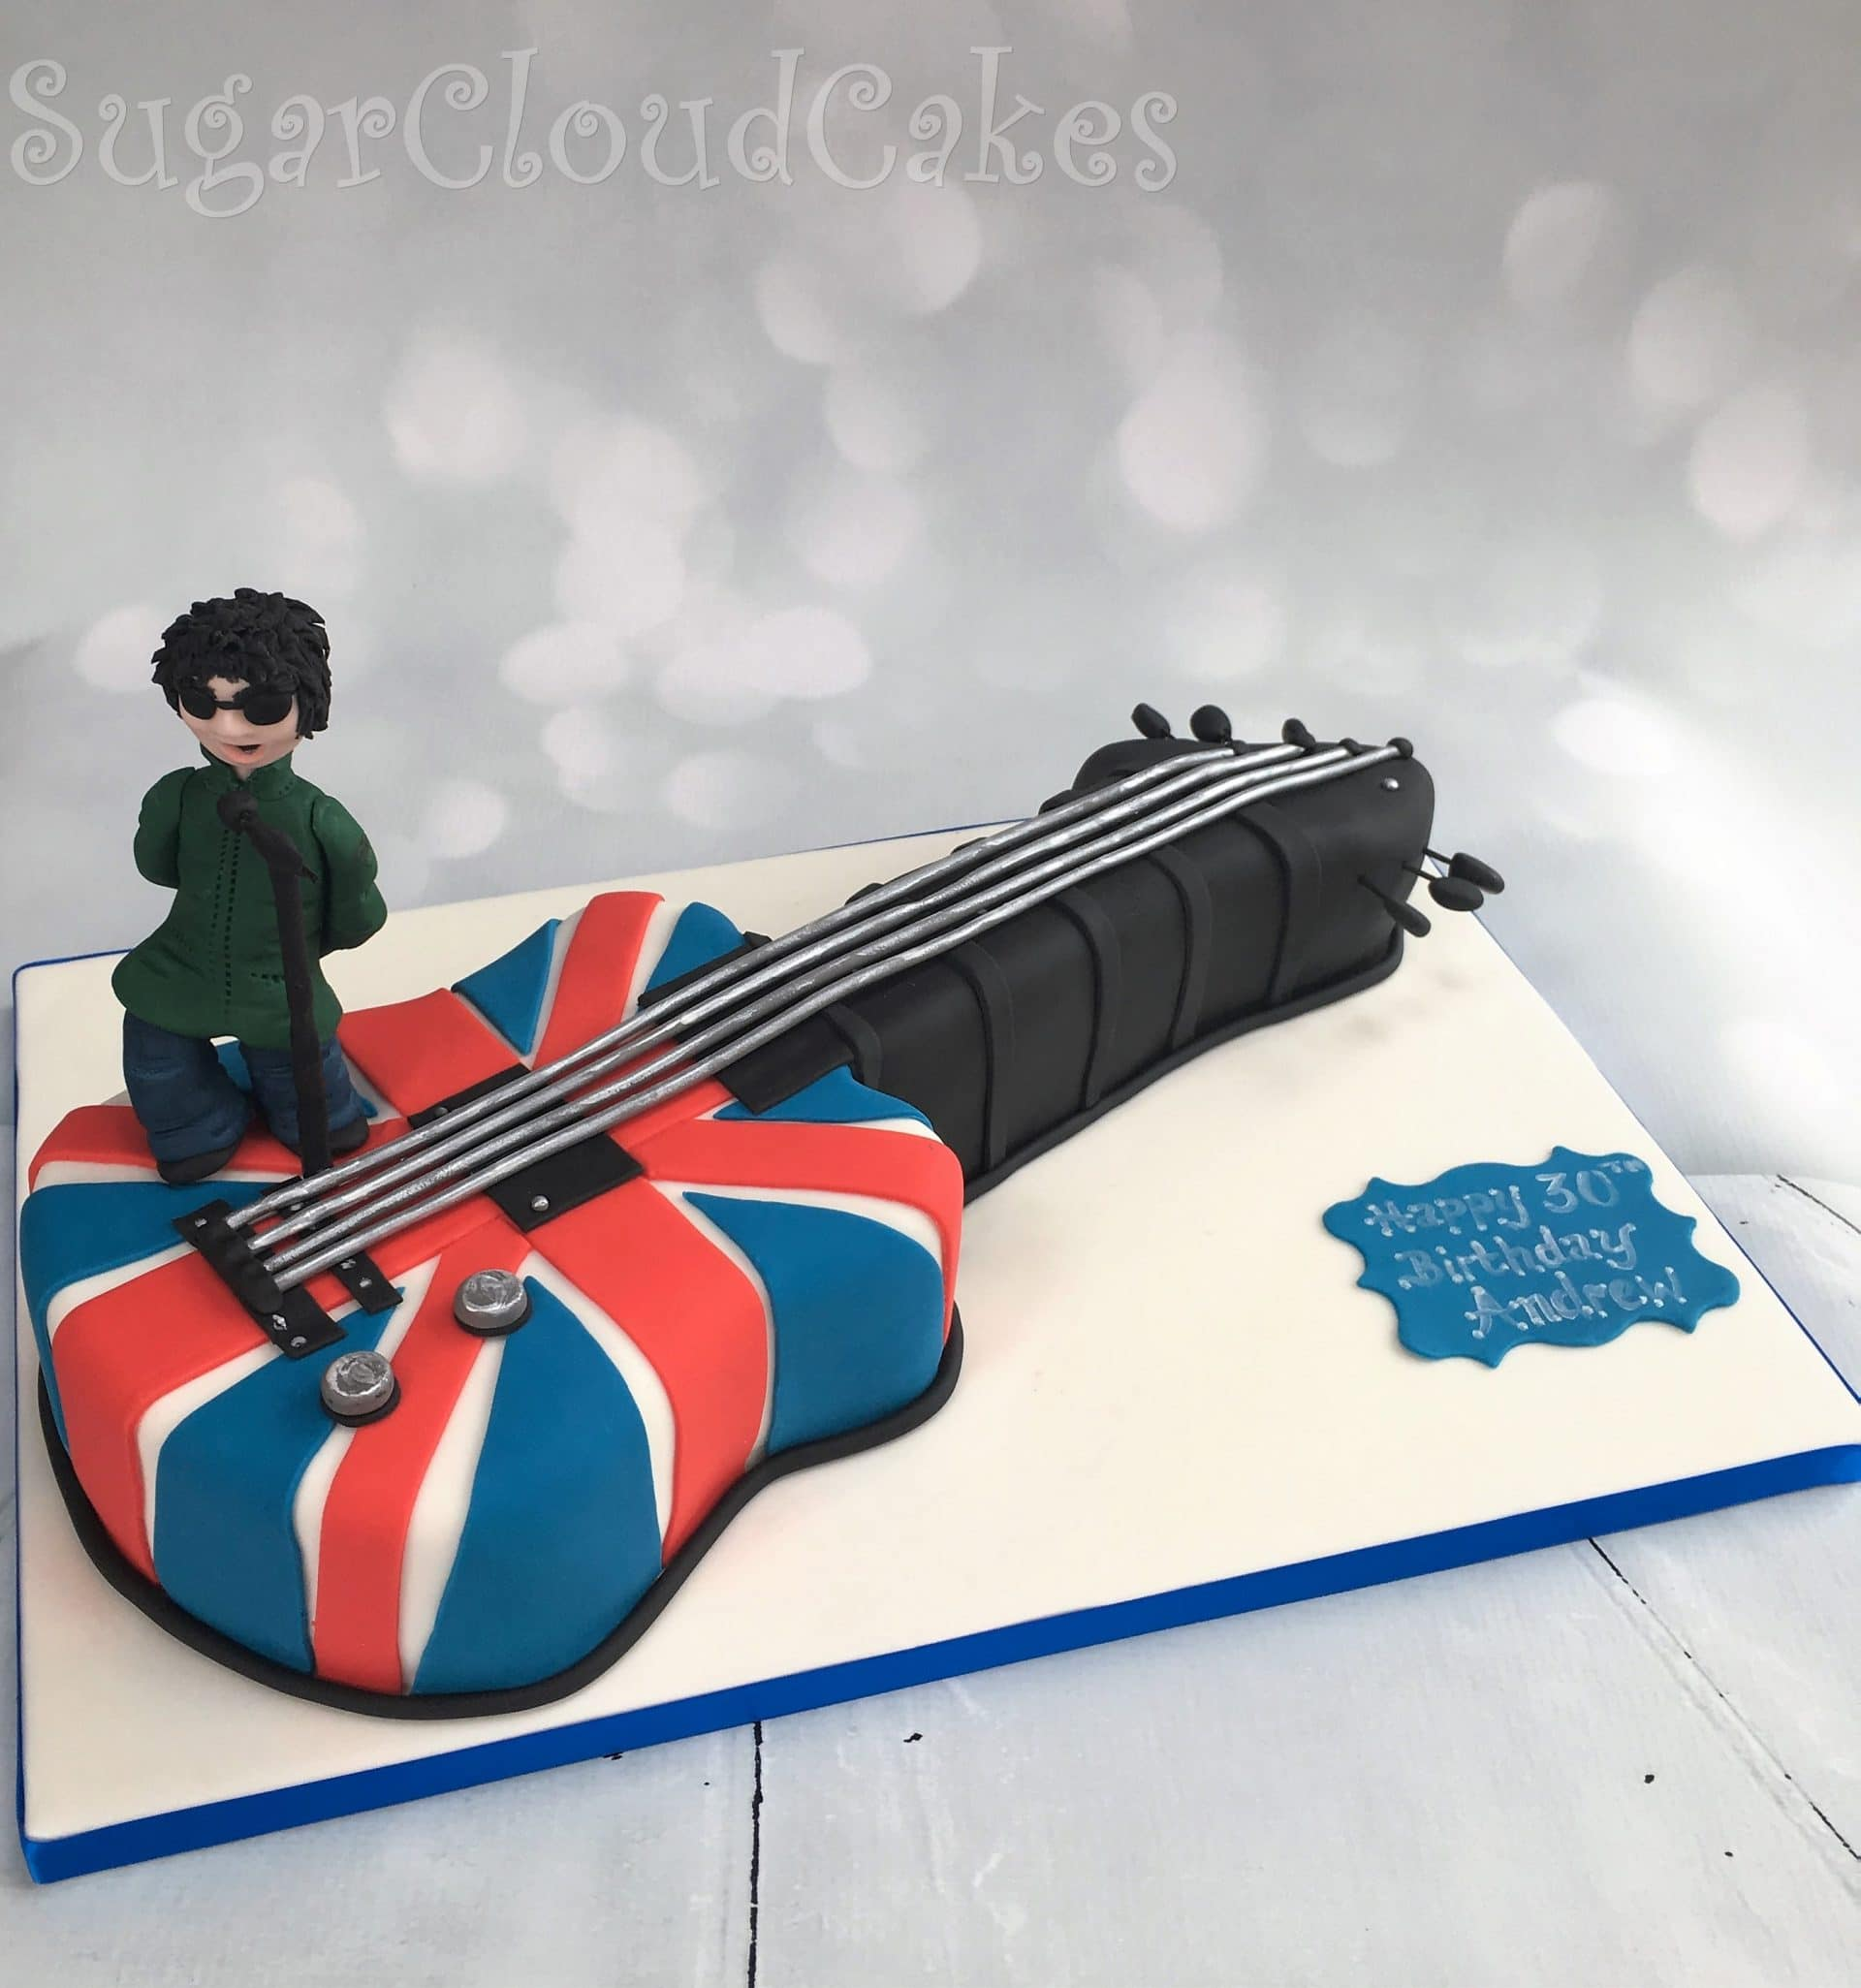 Liam Gallaghers Union Jack Guitar 30th Birthday Cake